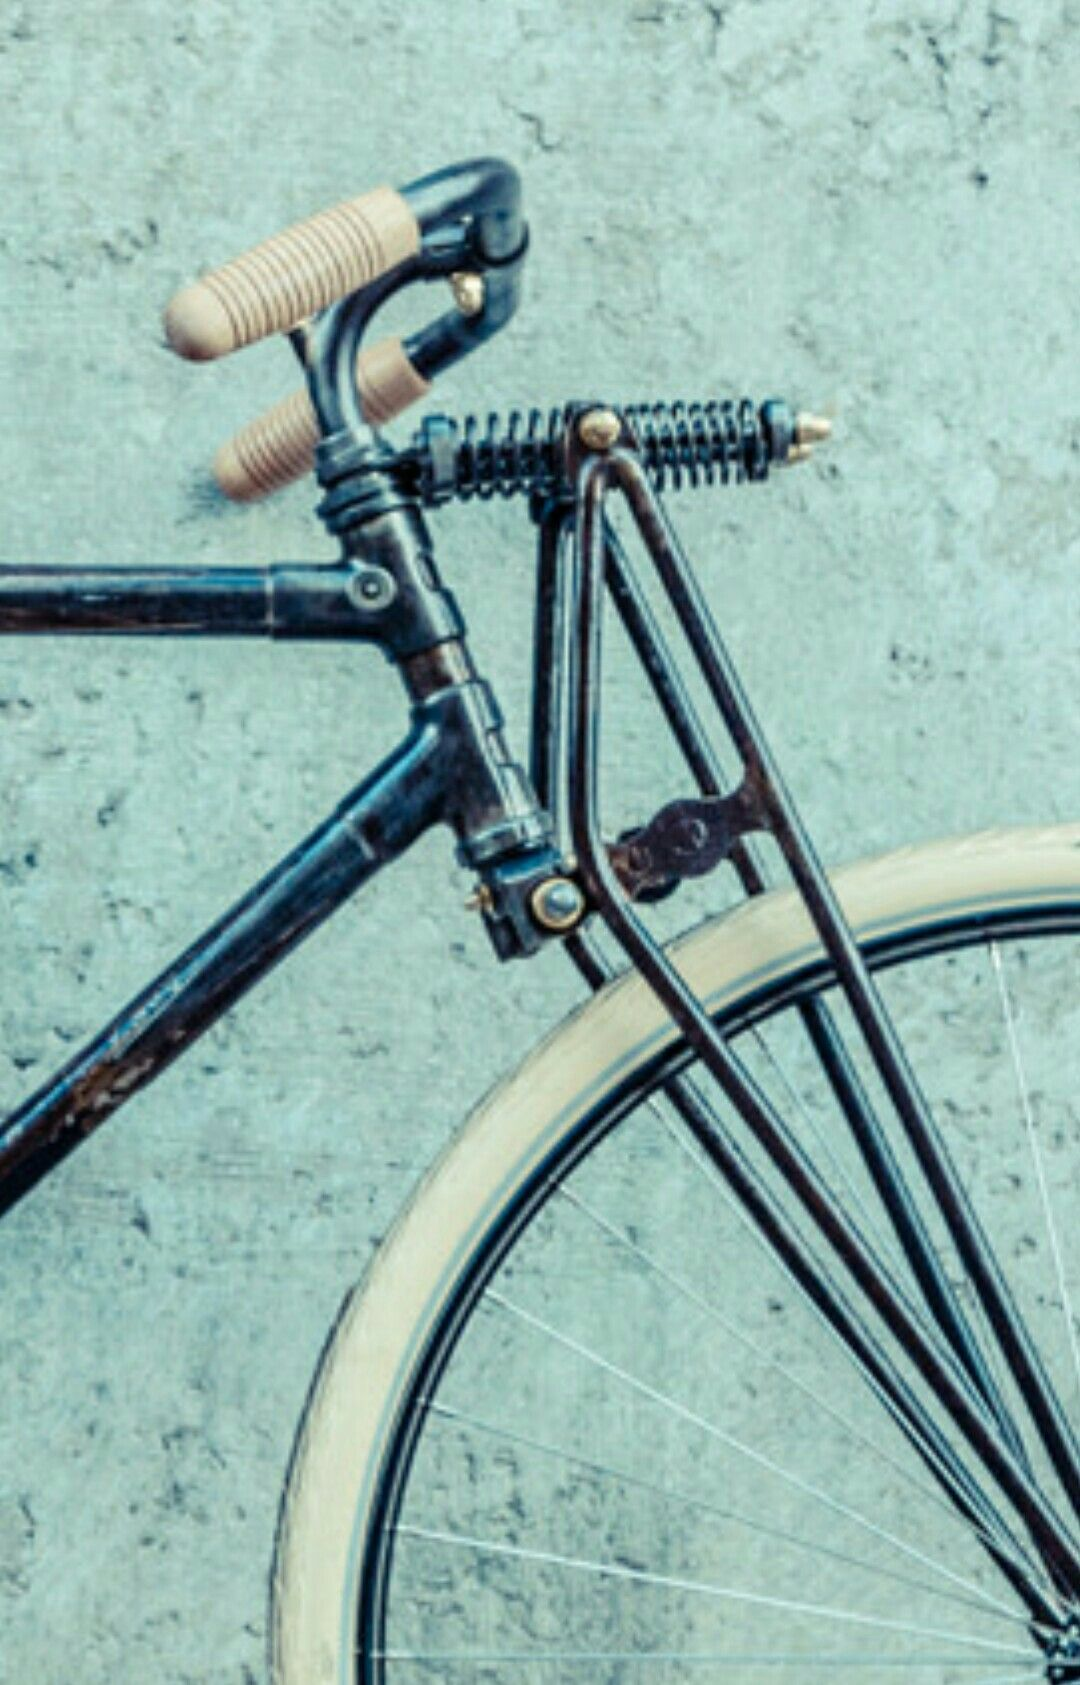 Pin By Frank Moes On Fahrrad Bike Technology Retro Bicycle Wooden Bike